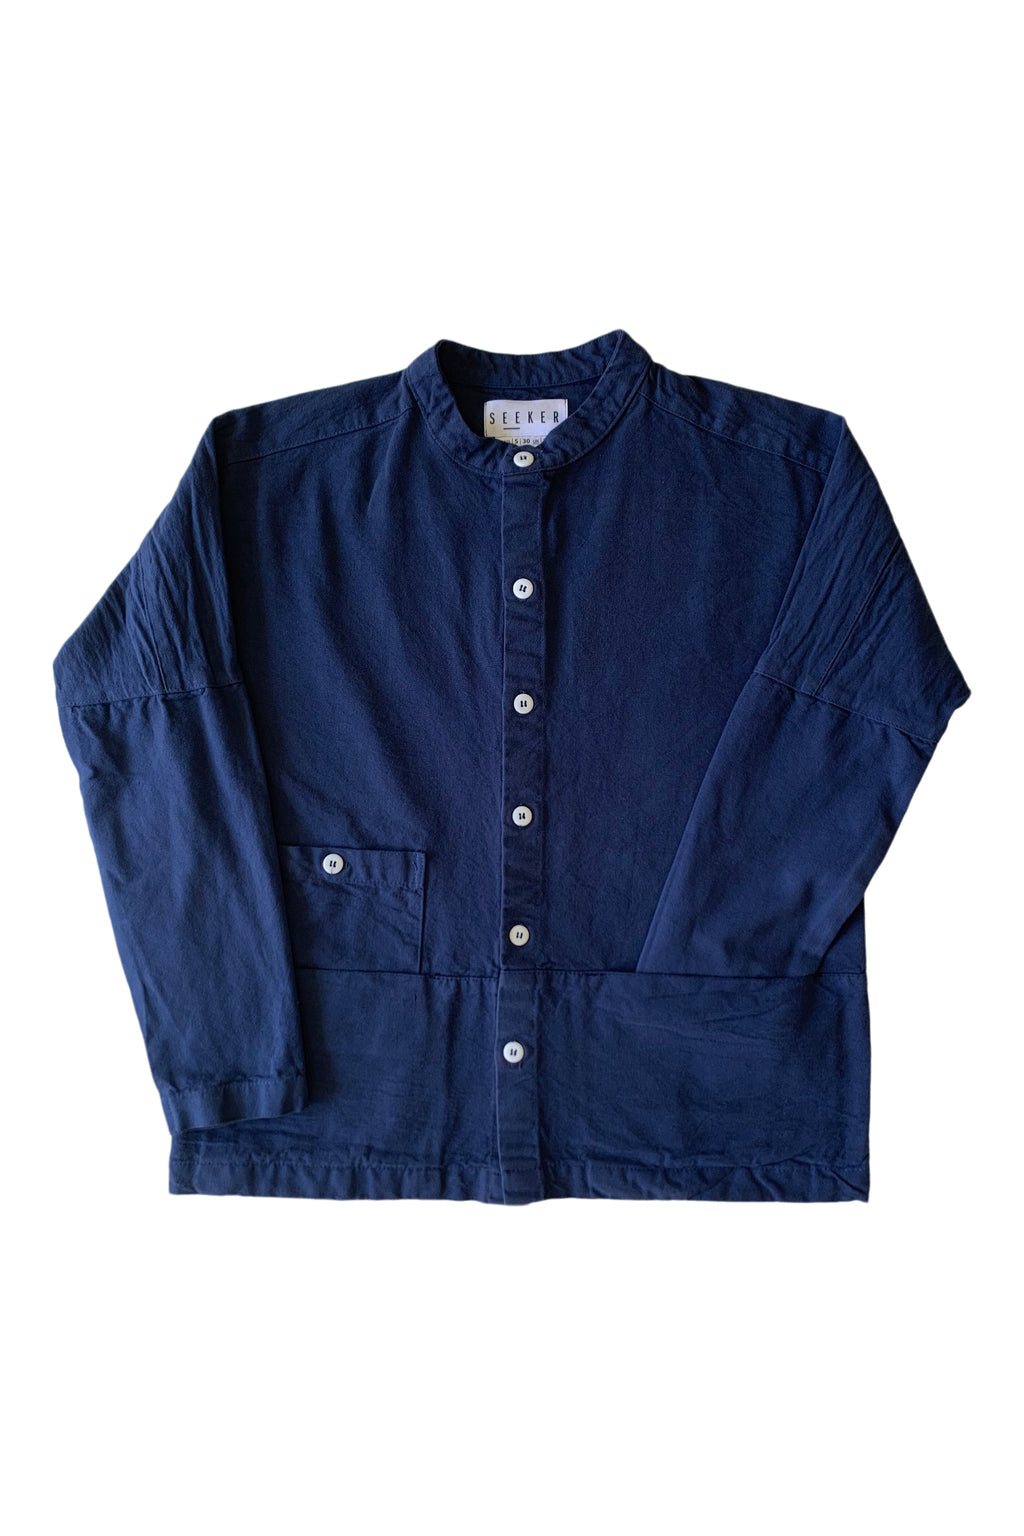 Raj Canvas Coat in Navy